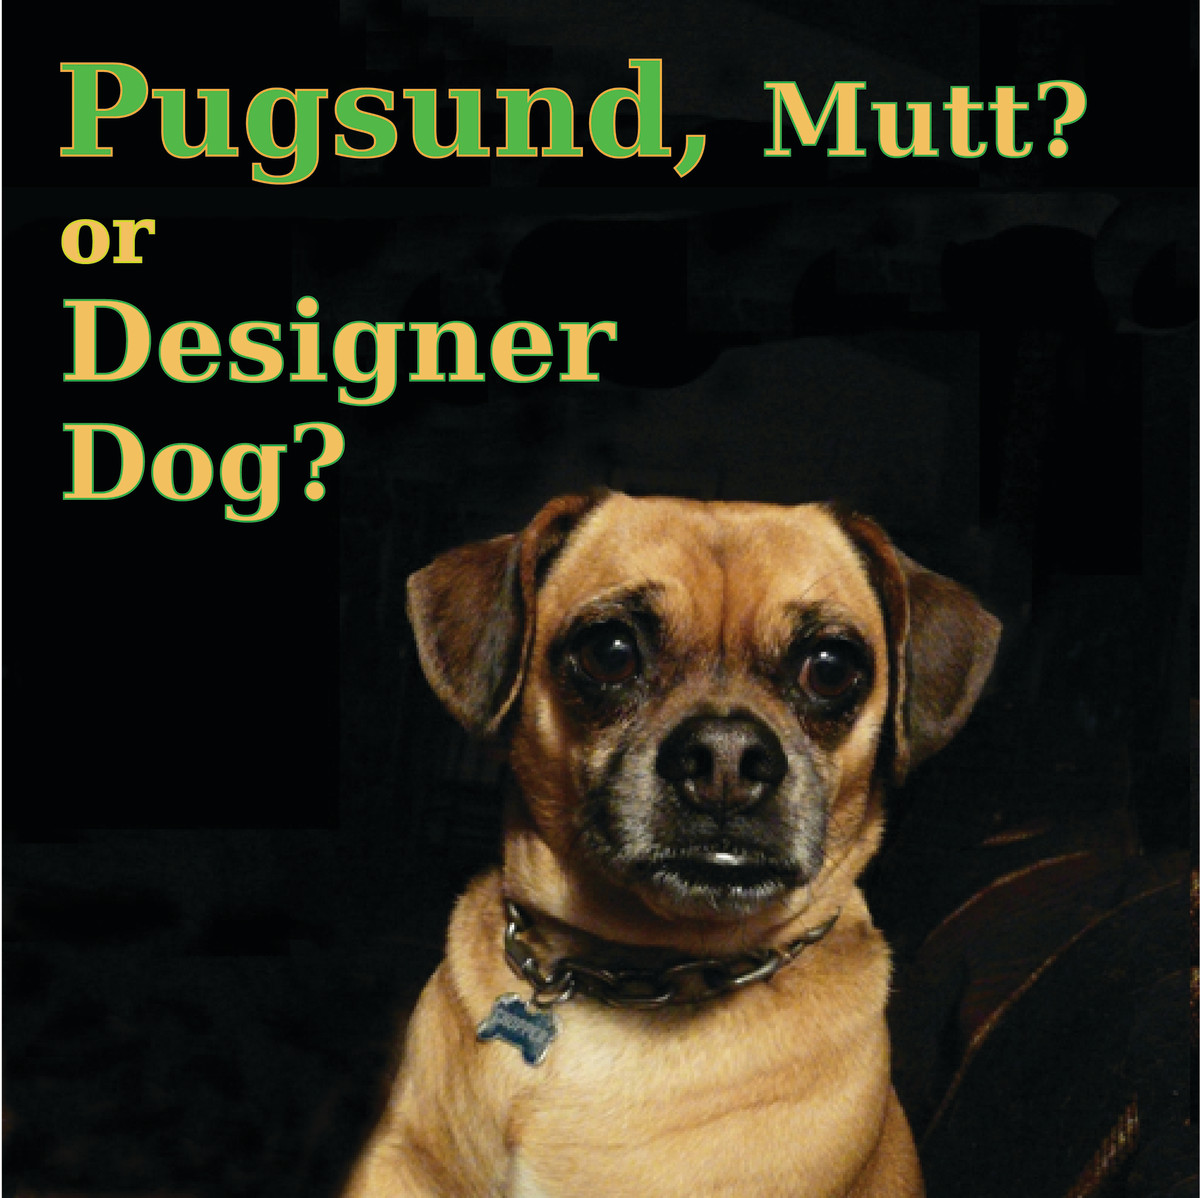 Pugsund - Mutt or Designer Dog?